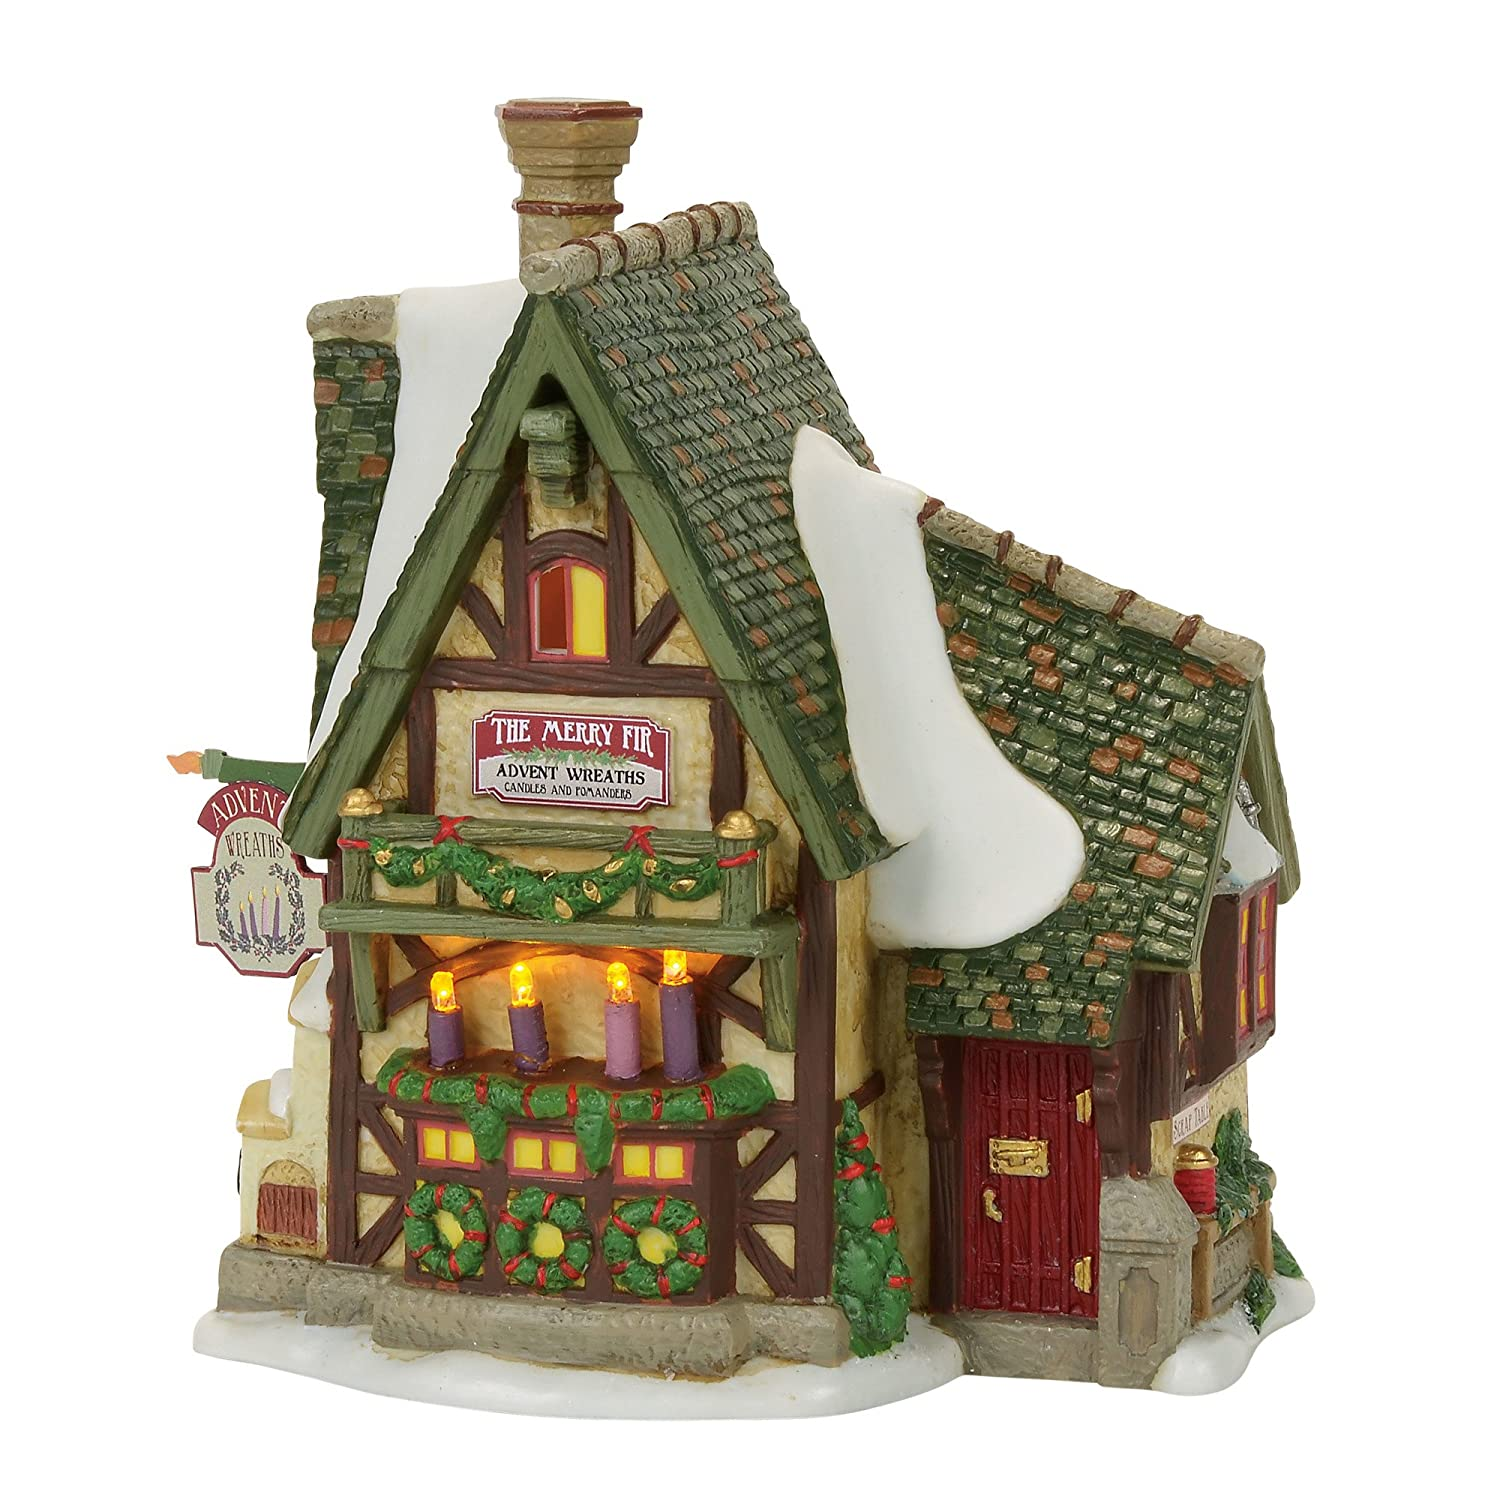 Department 56 Dickens Merry Fir Advent Wreaths Village Lit Building, Multicolor 4056636